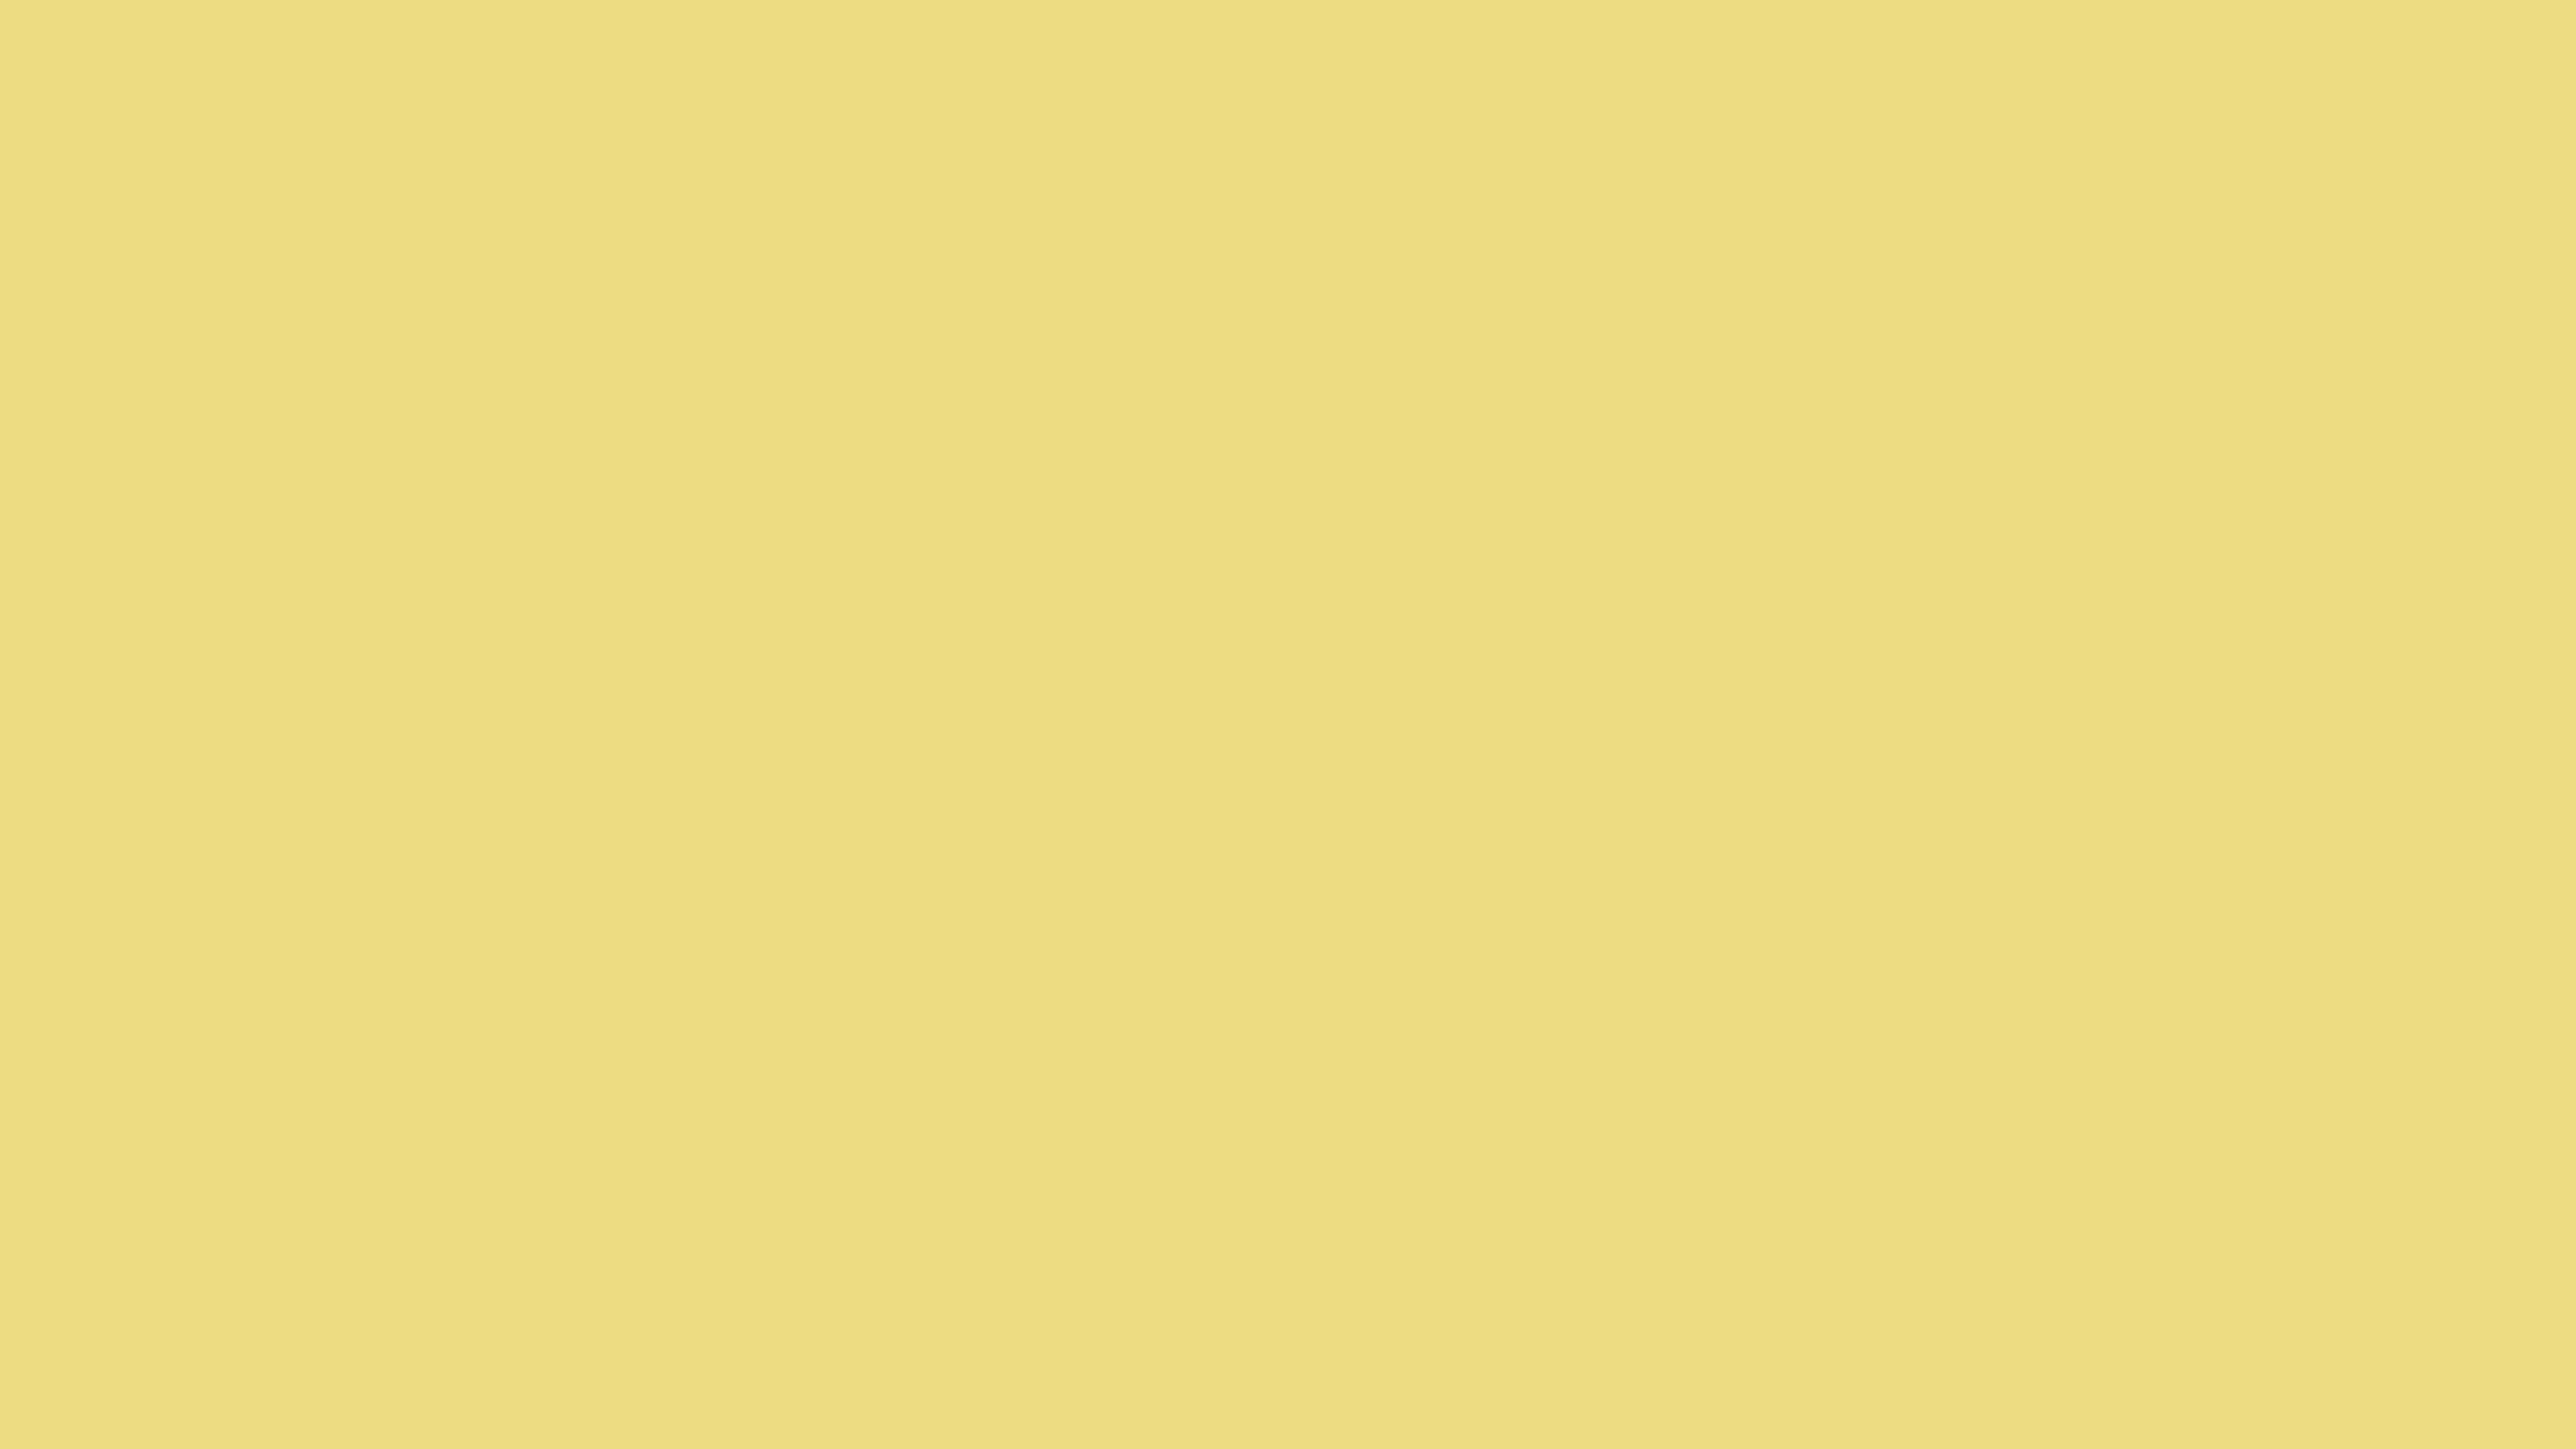 5120x2880 Flax Solid Color Background